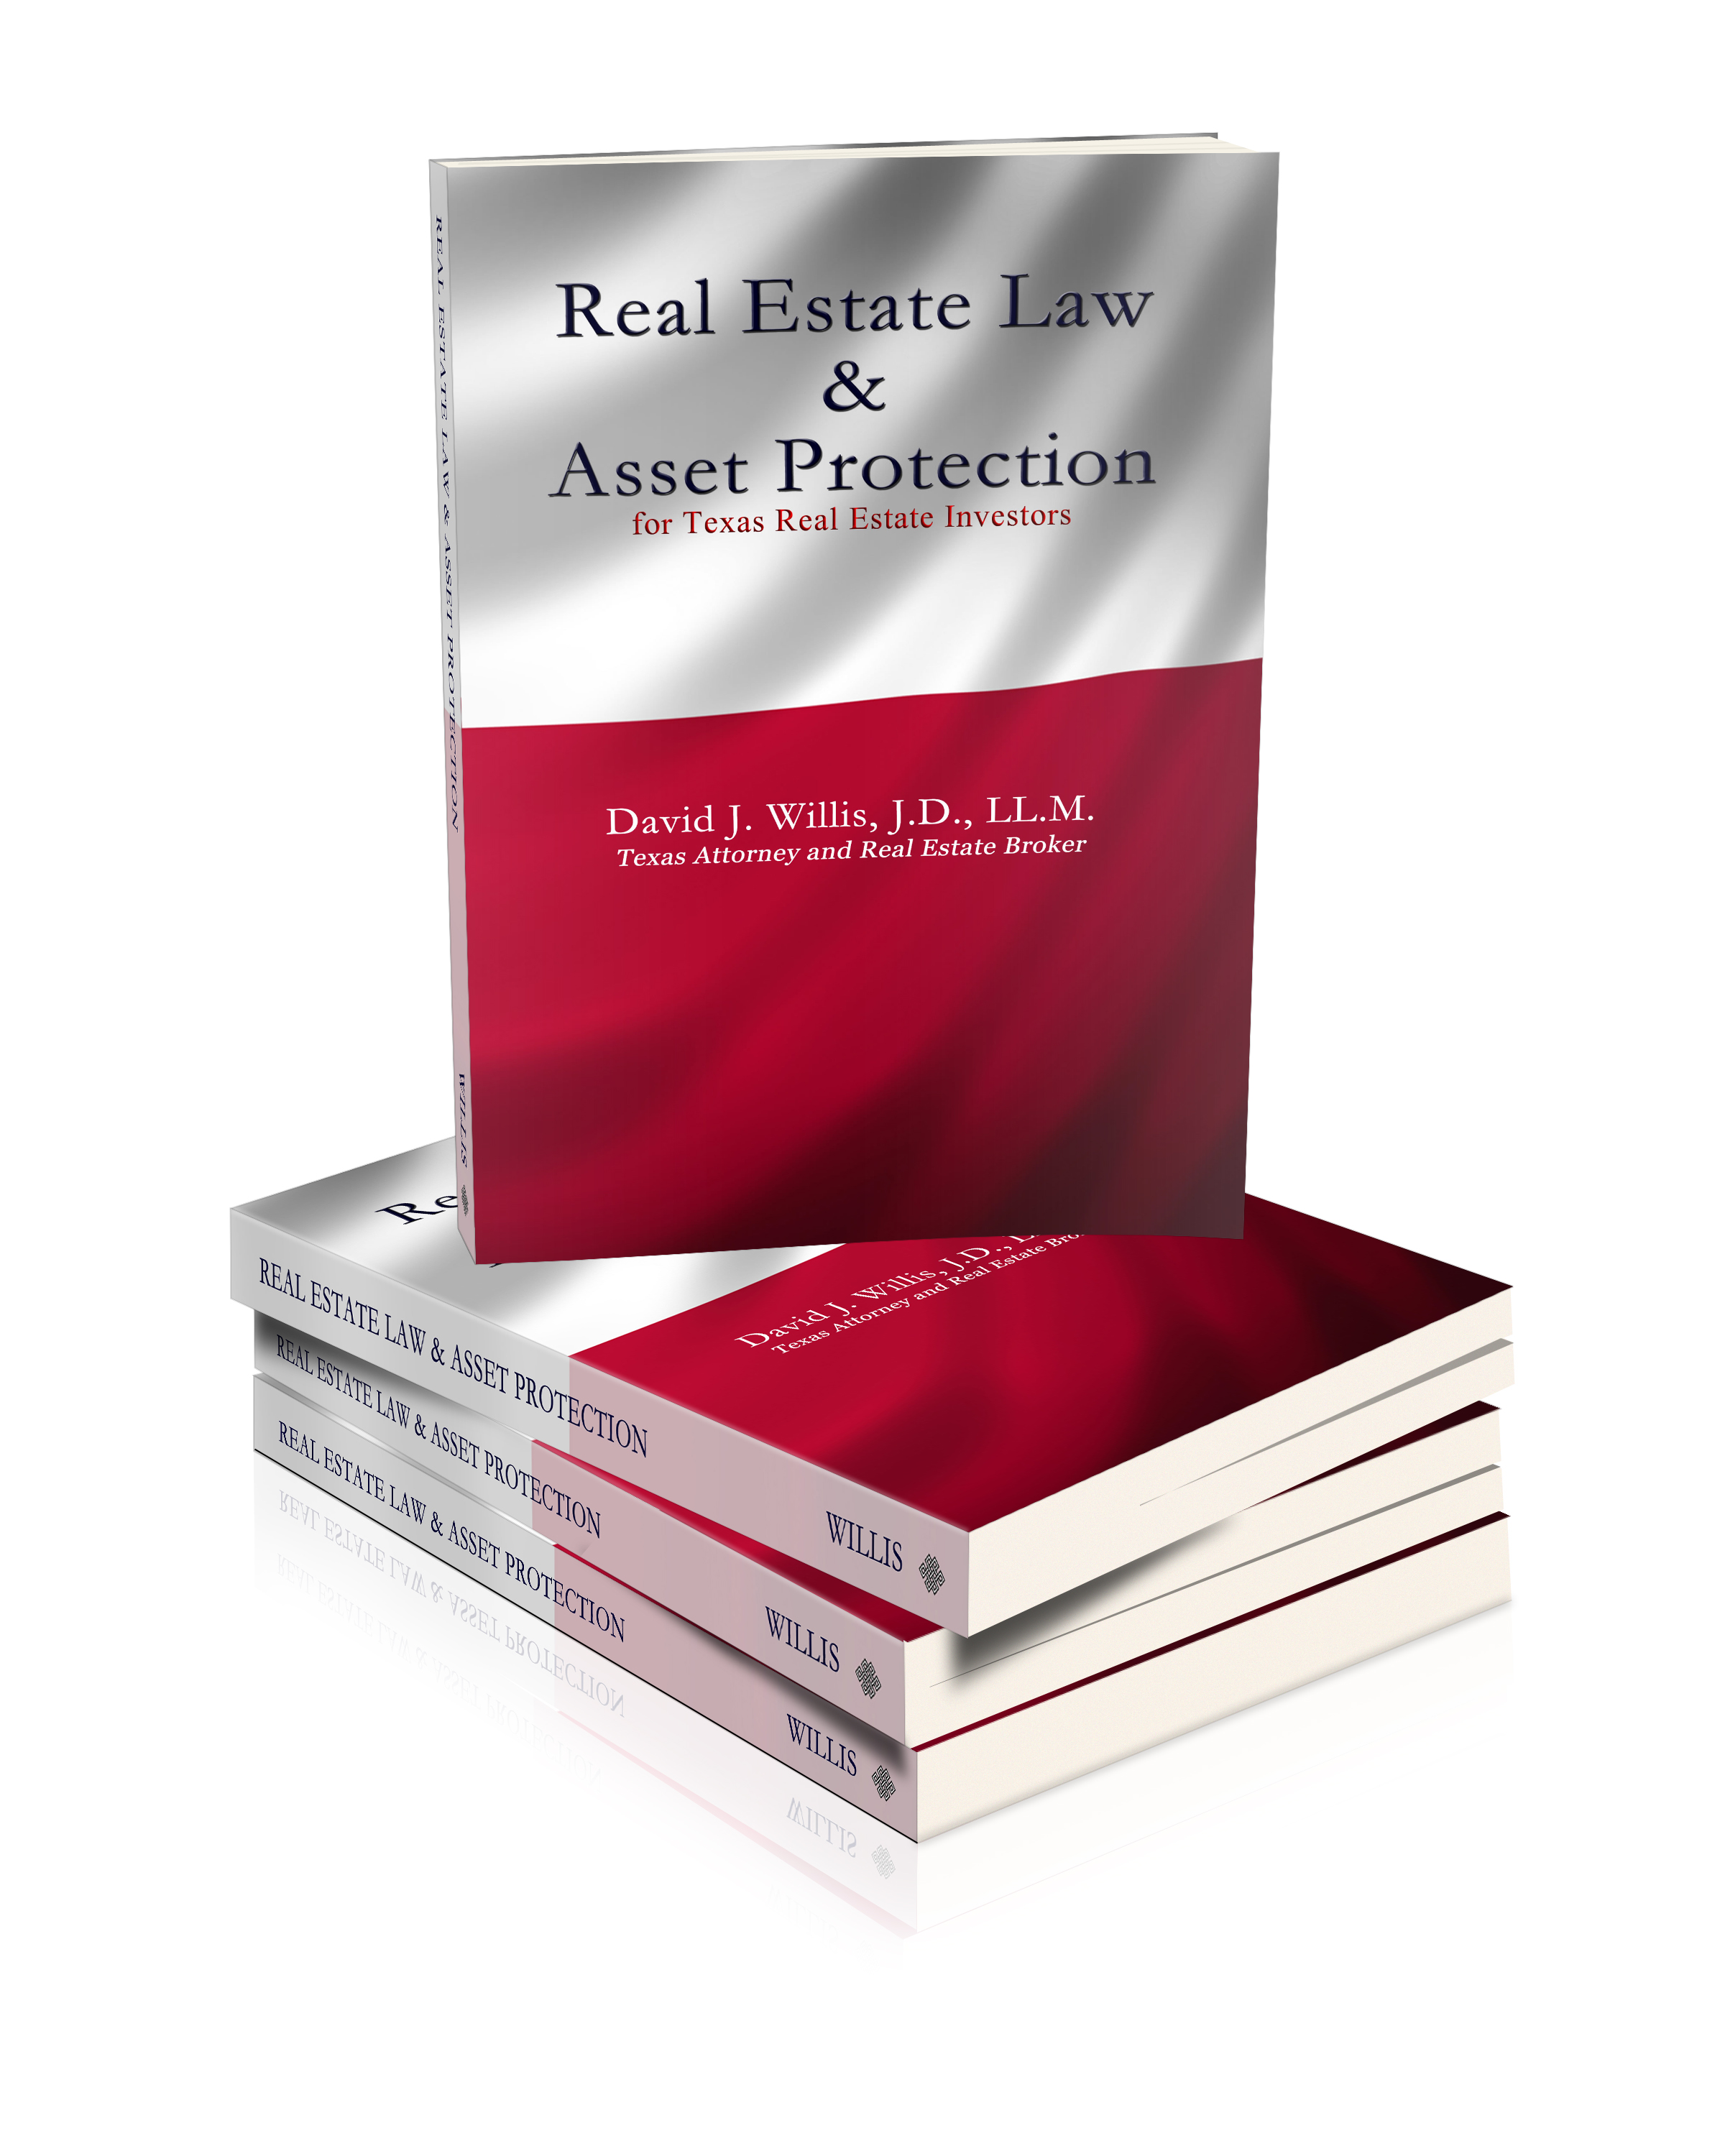 New Book Release - Real Estate Law & Asset Protection fo